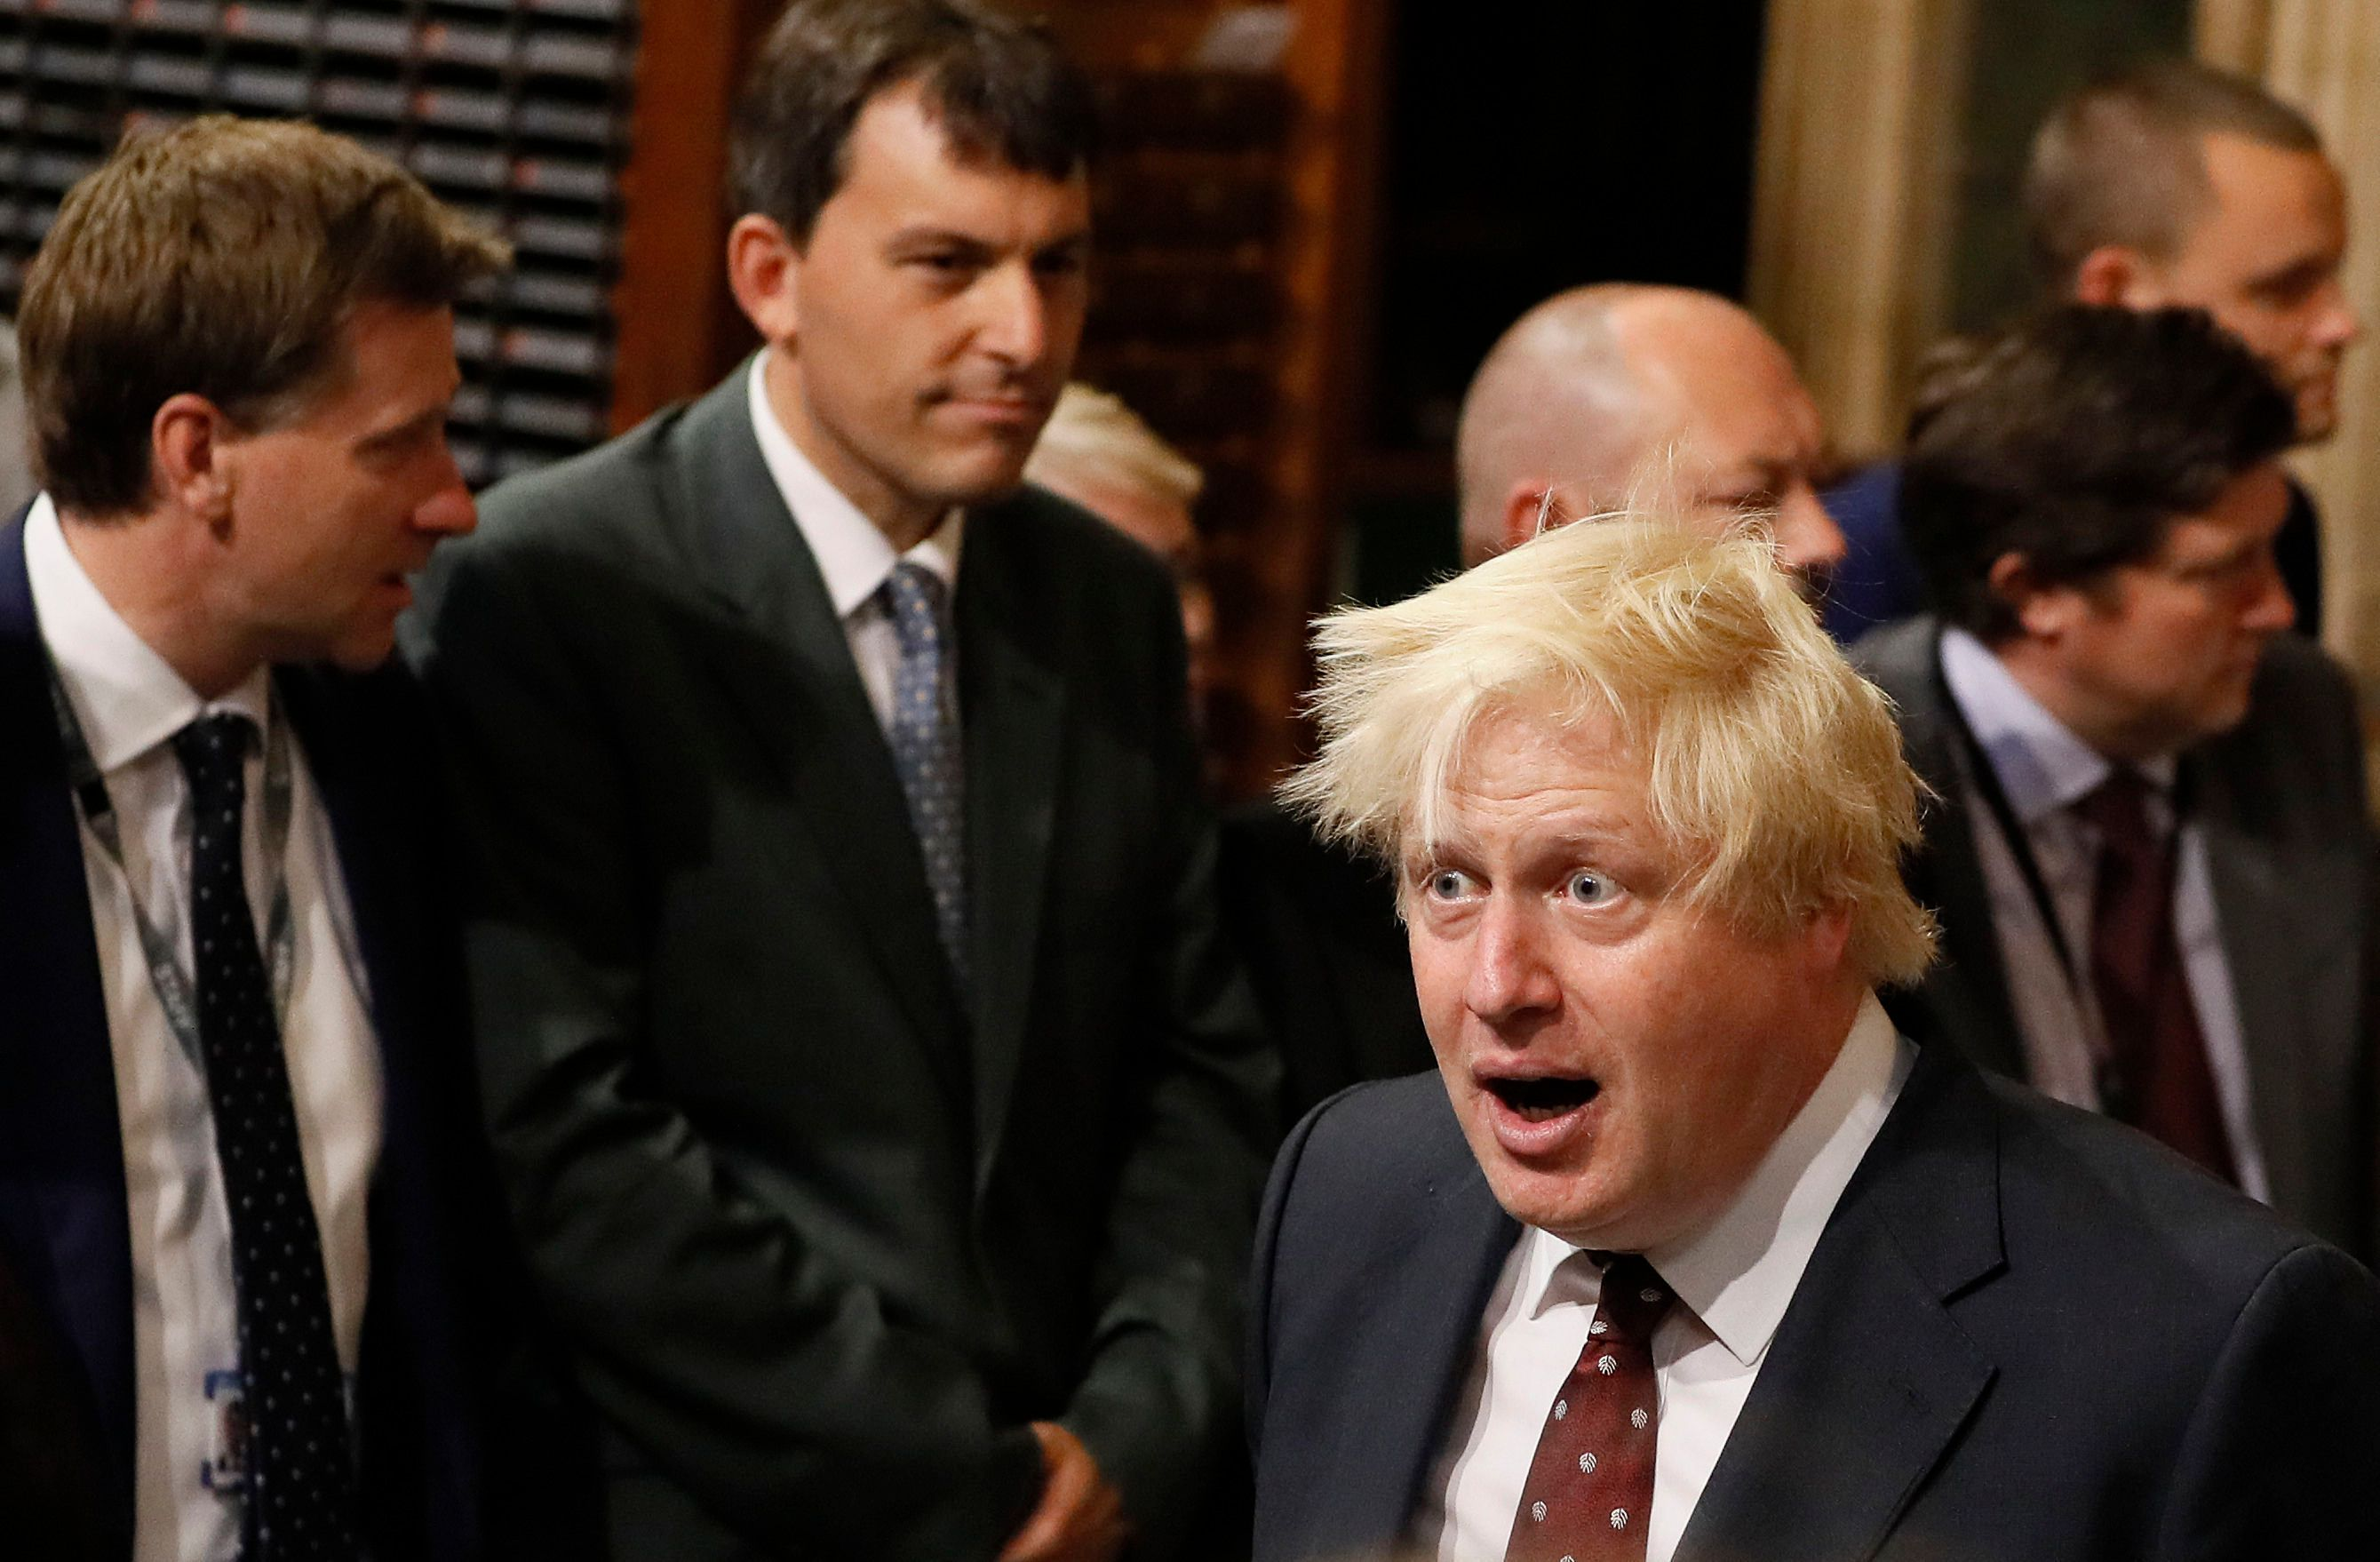 Boris Johnson Blunders His Way Through Painful Interview With Radio 4's Eddie